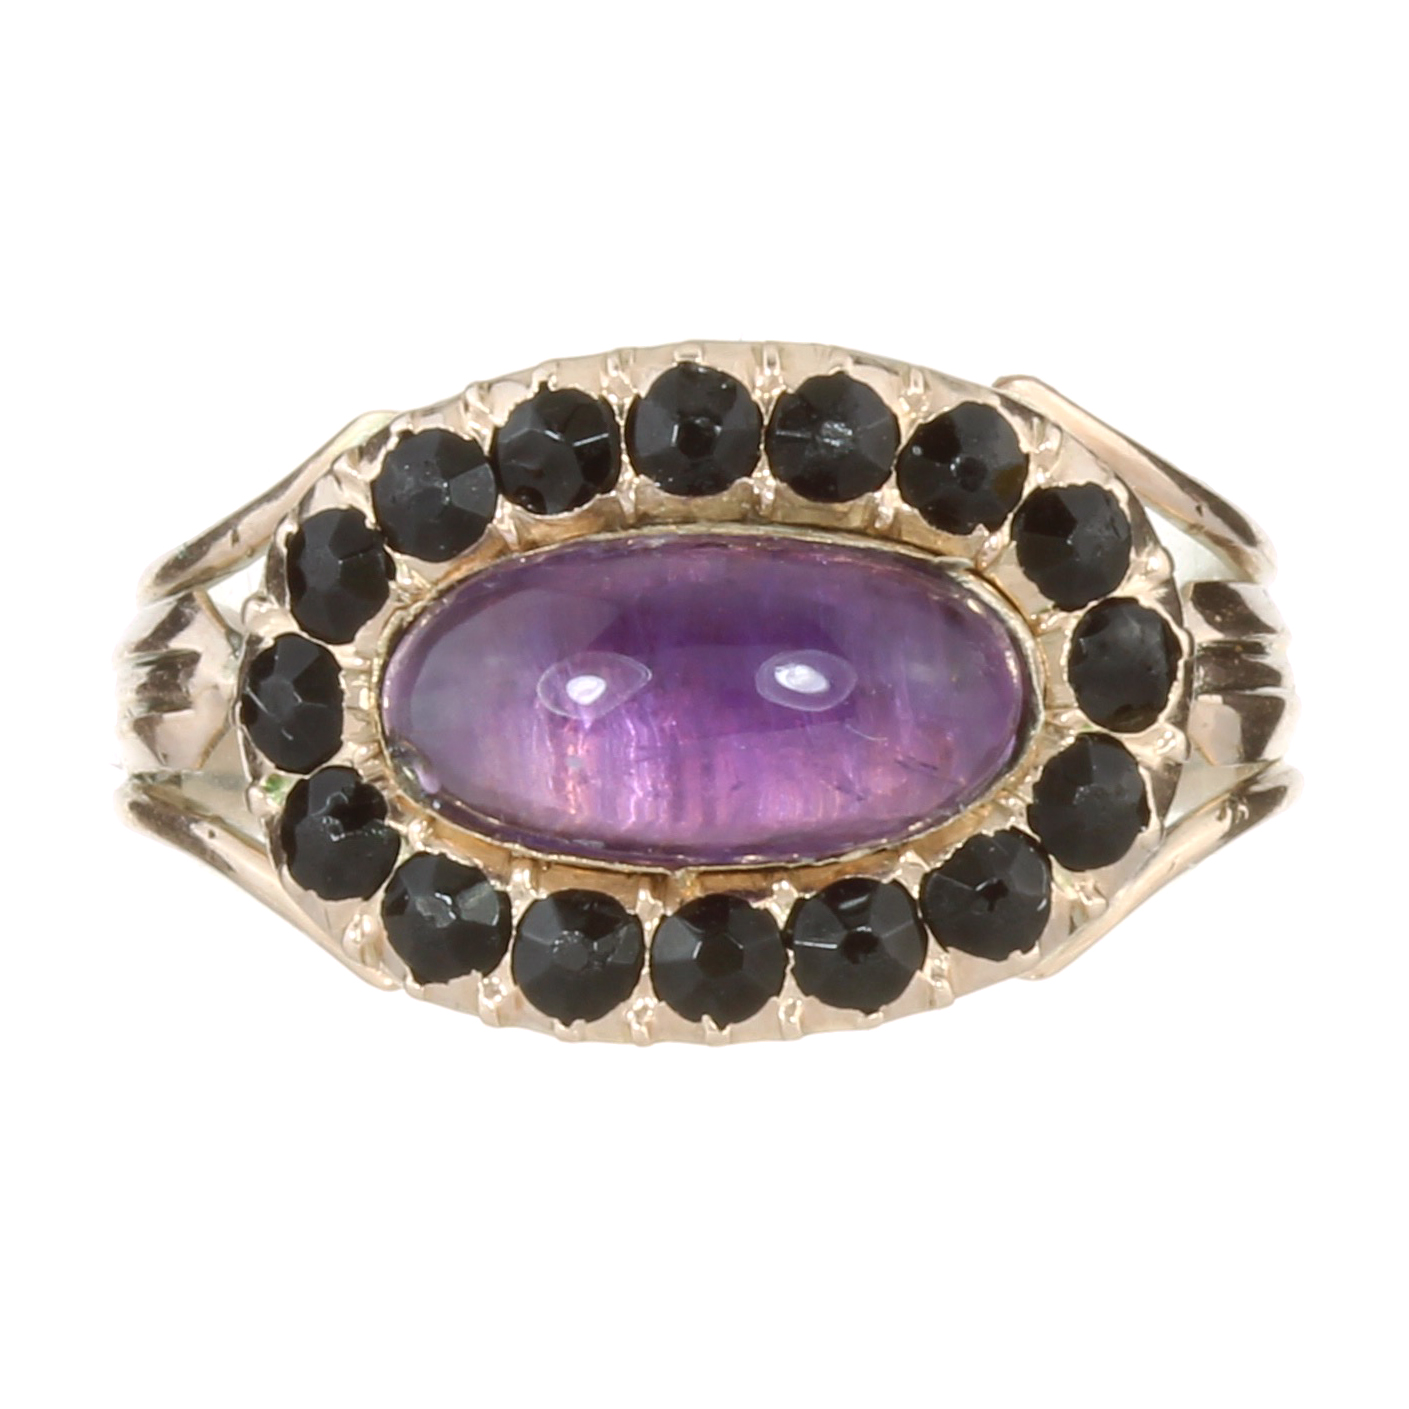 AN ANTIQUE GEORGIAN AMETHYST AND ONYX MOURNING RING, EARLY 19TH CENTURY in high carat yellow gold,